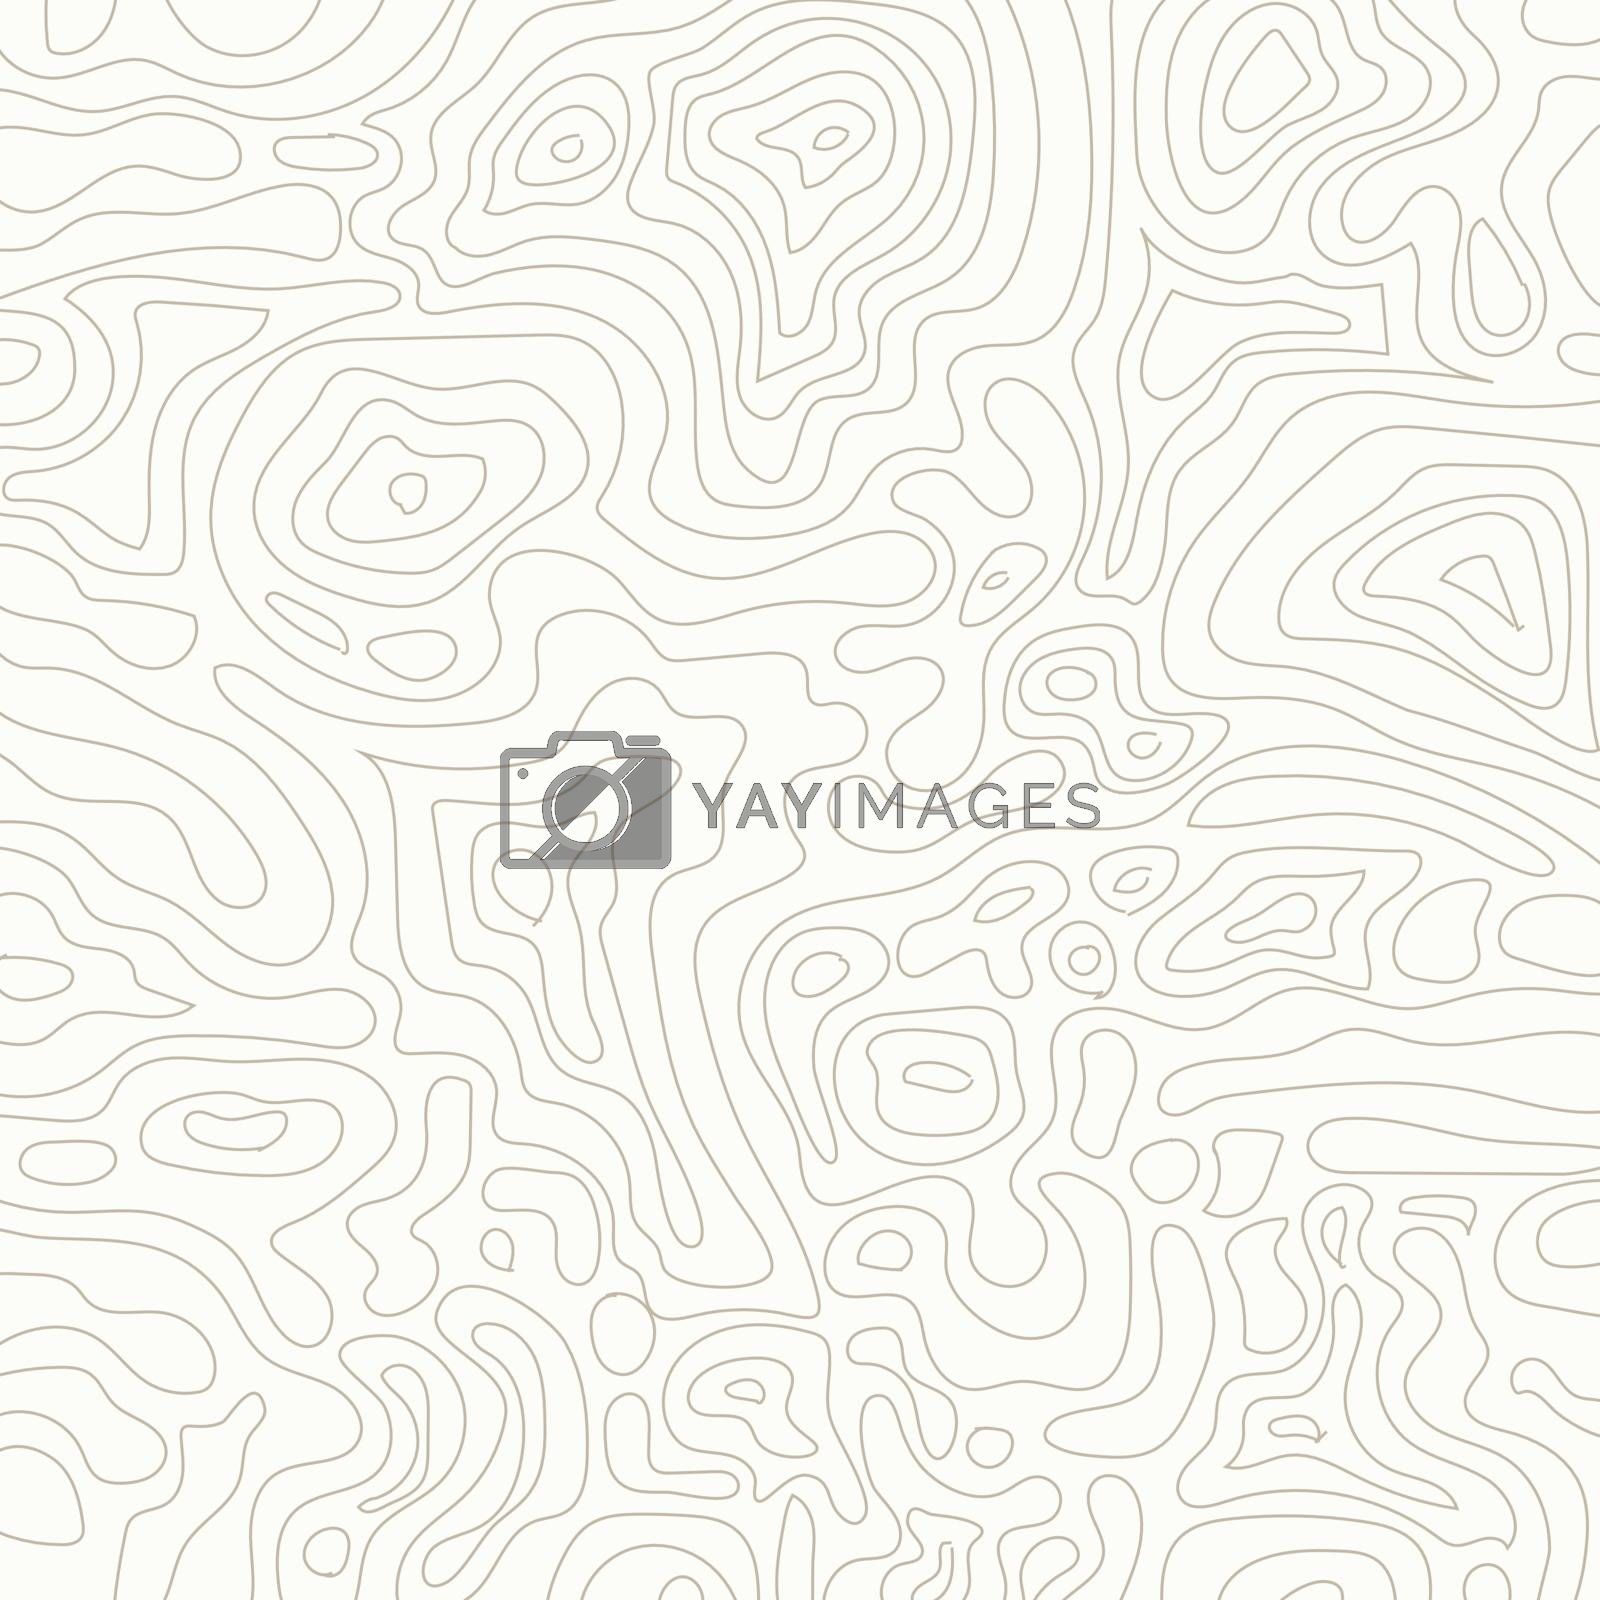 Topographic map on light brown background. Abstract vector illustration